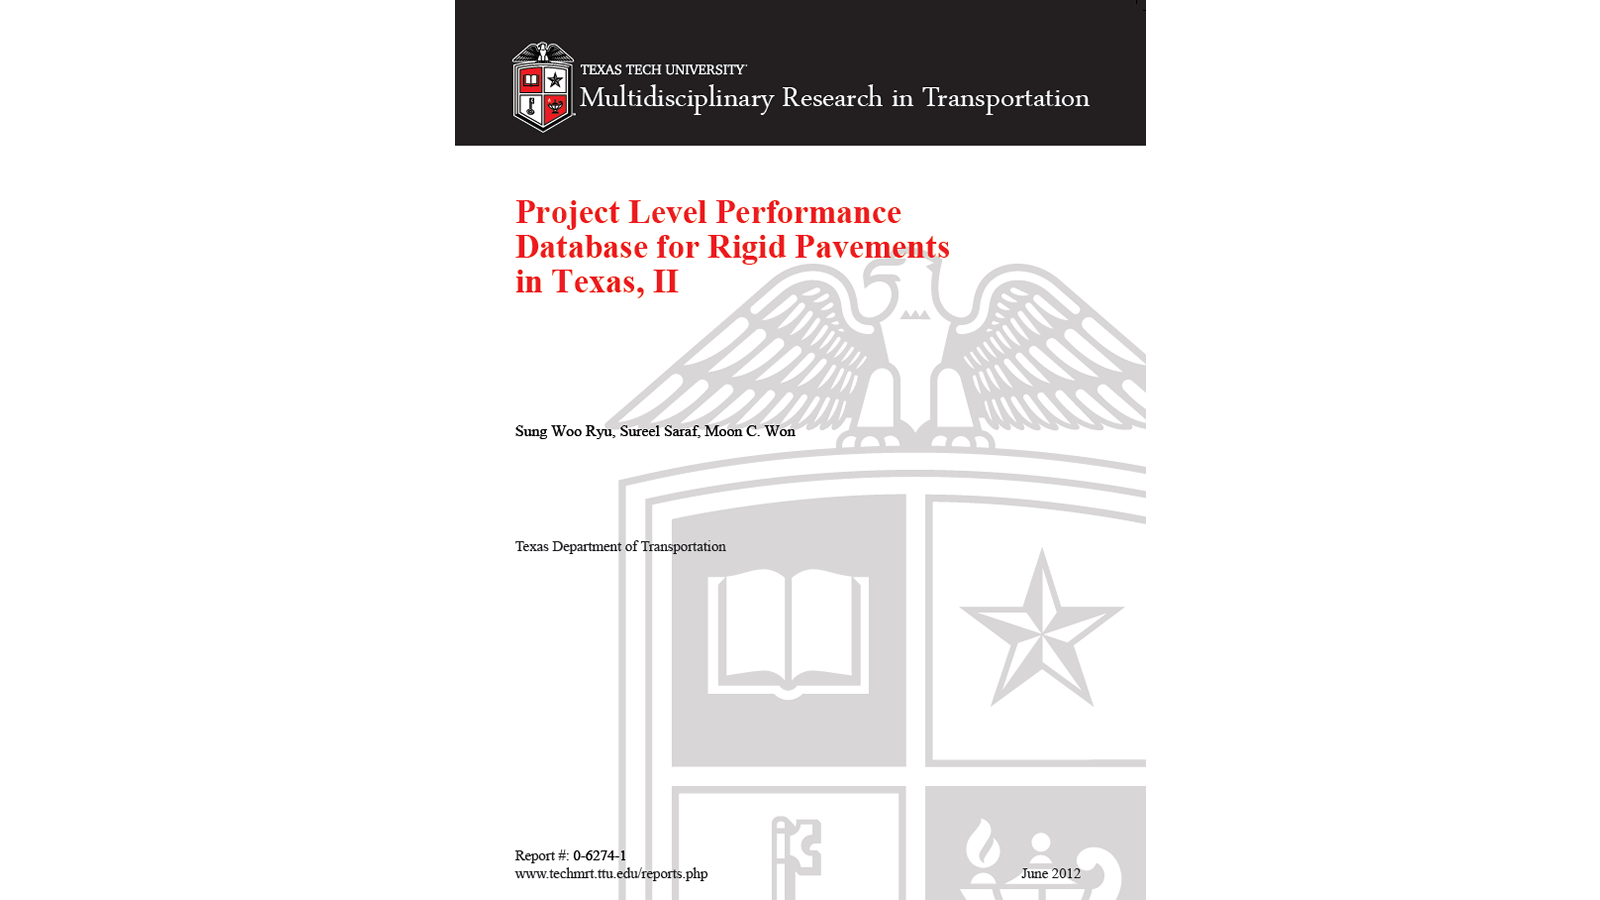 Project Level Performance Database for Rigid Pavements in Texas, Part II (FHWA/TX -11-0-6274-1)